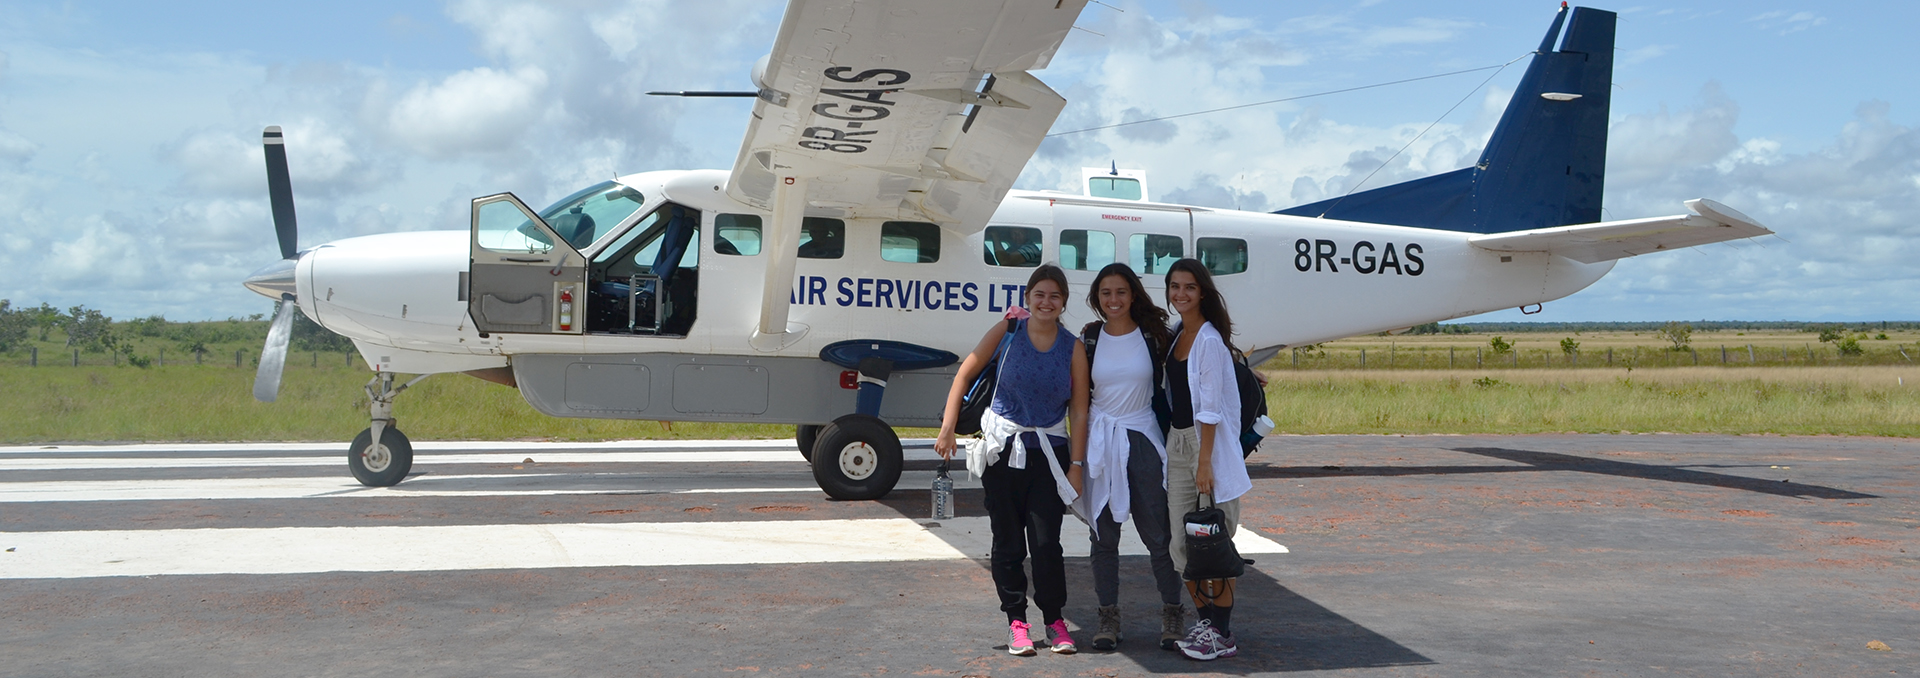 QEII students board a plane in Guyana as part of their internships 2016